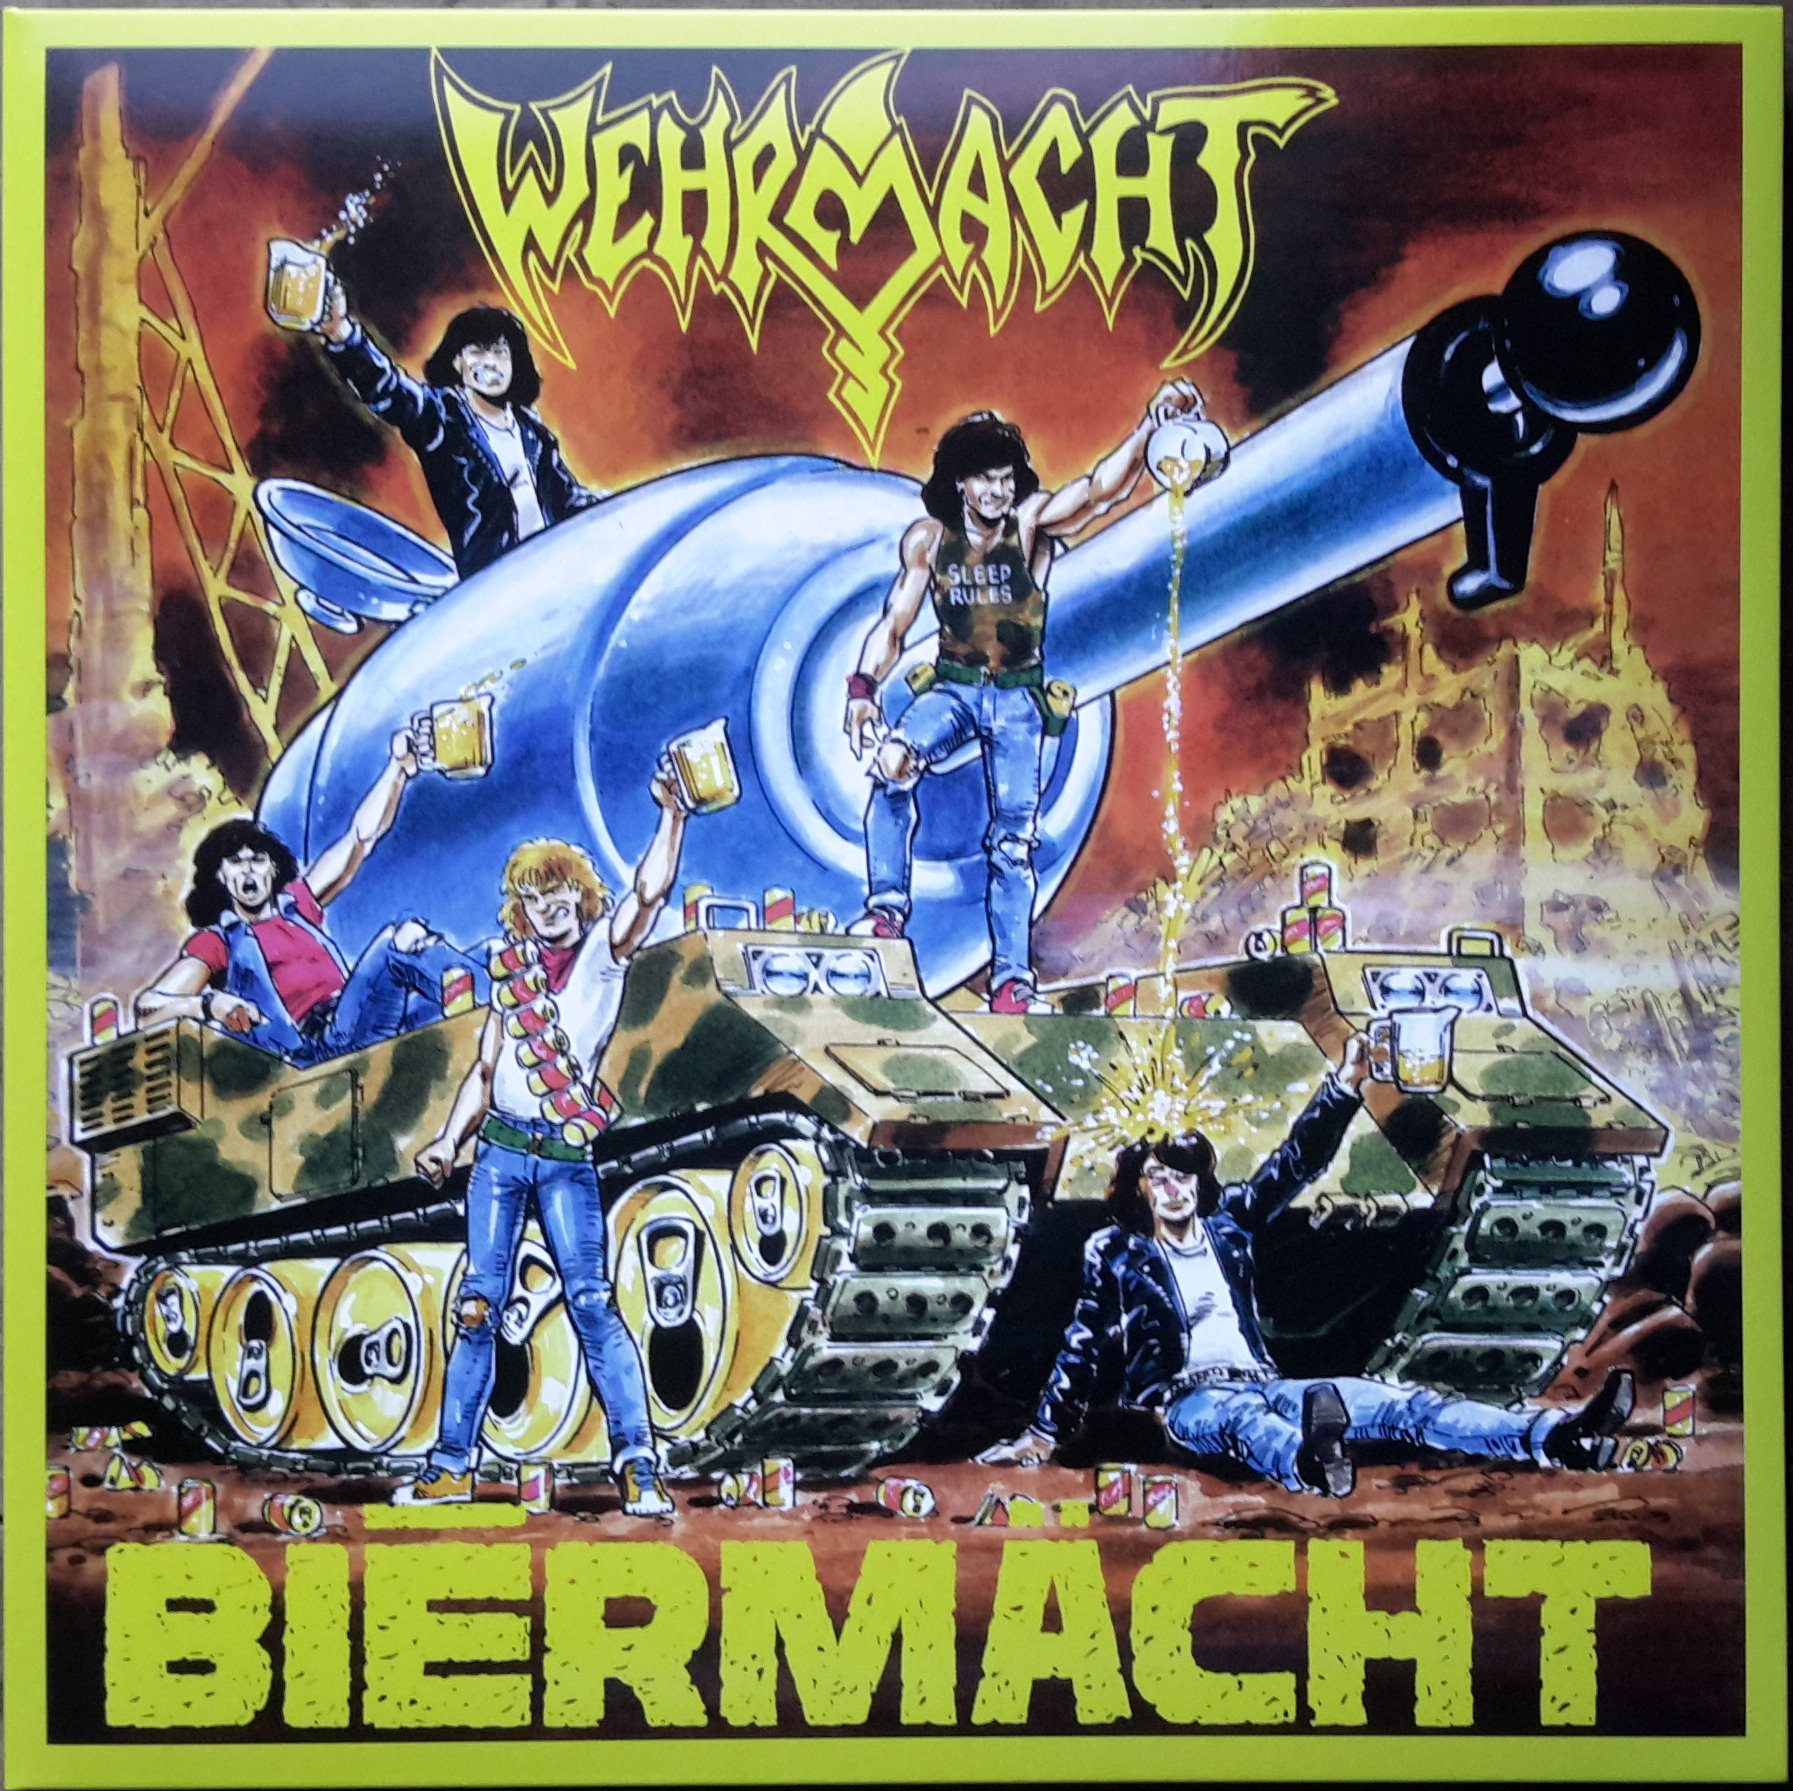 Wehrmacht - The Complete Beer-Soaked Collection 1985-1989 - 2014